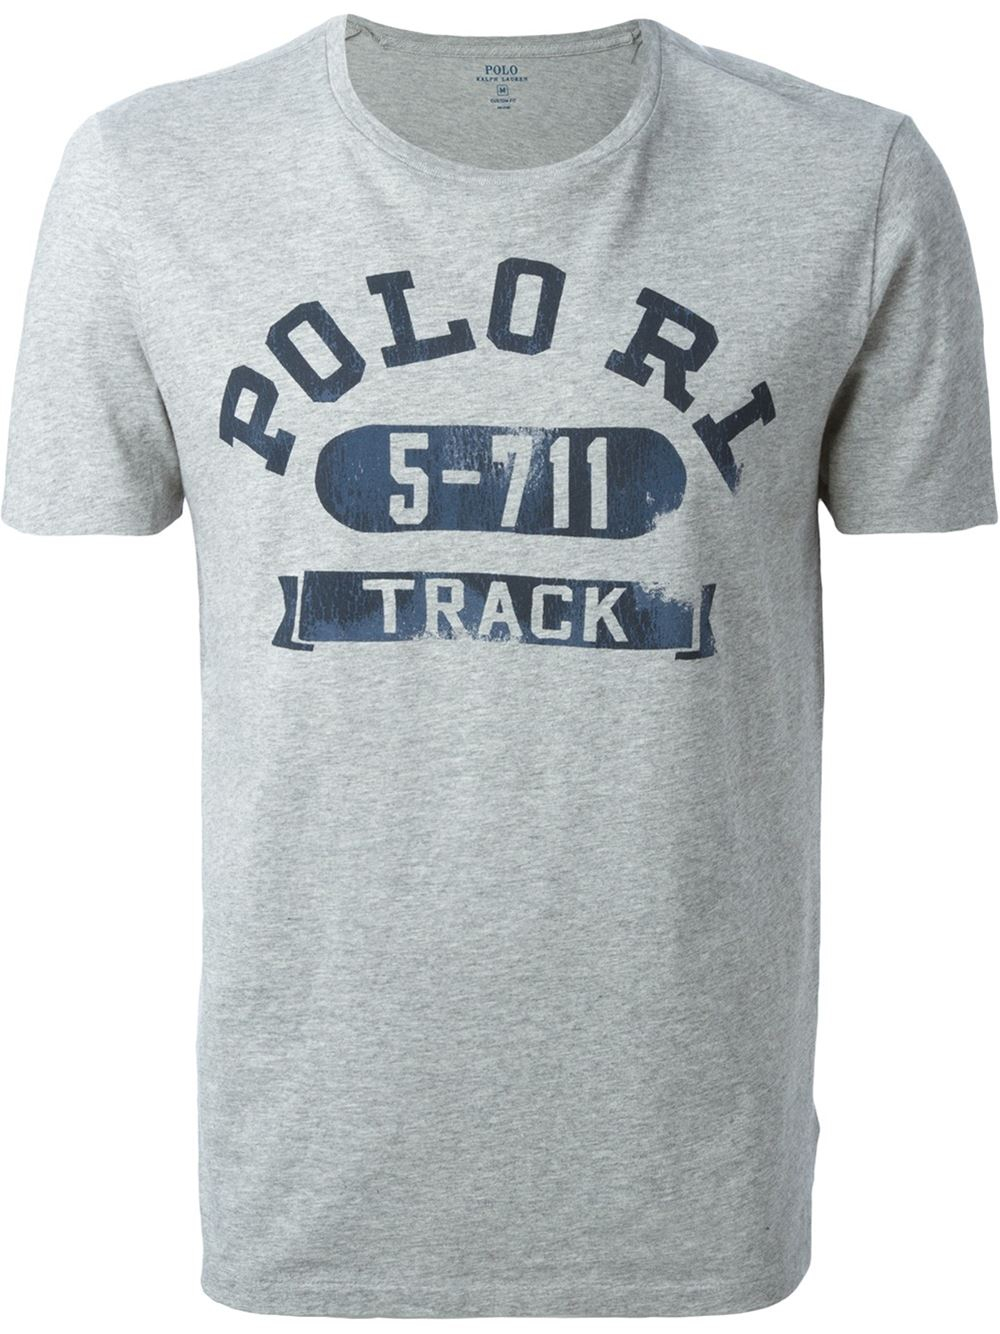 Polo ralph lauren embroidered logo t shirt in gray for men for Embroidered logos on shirts